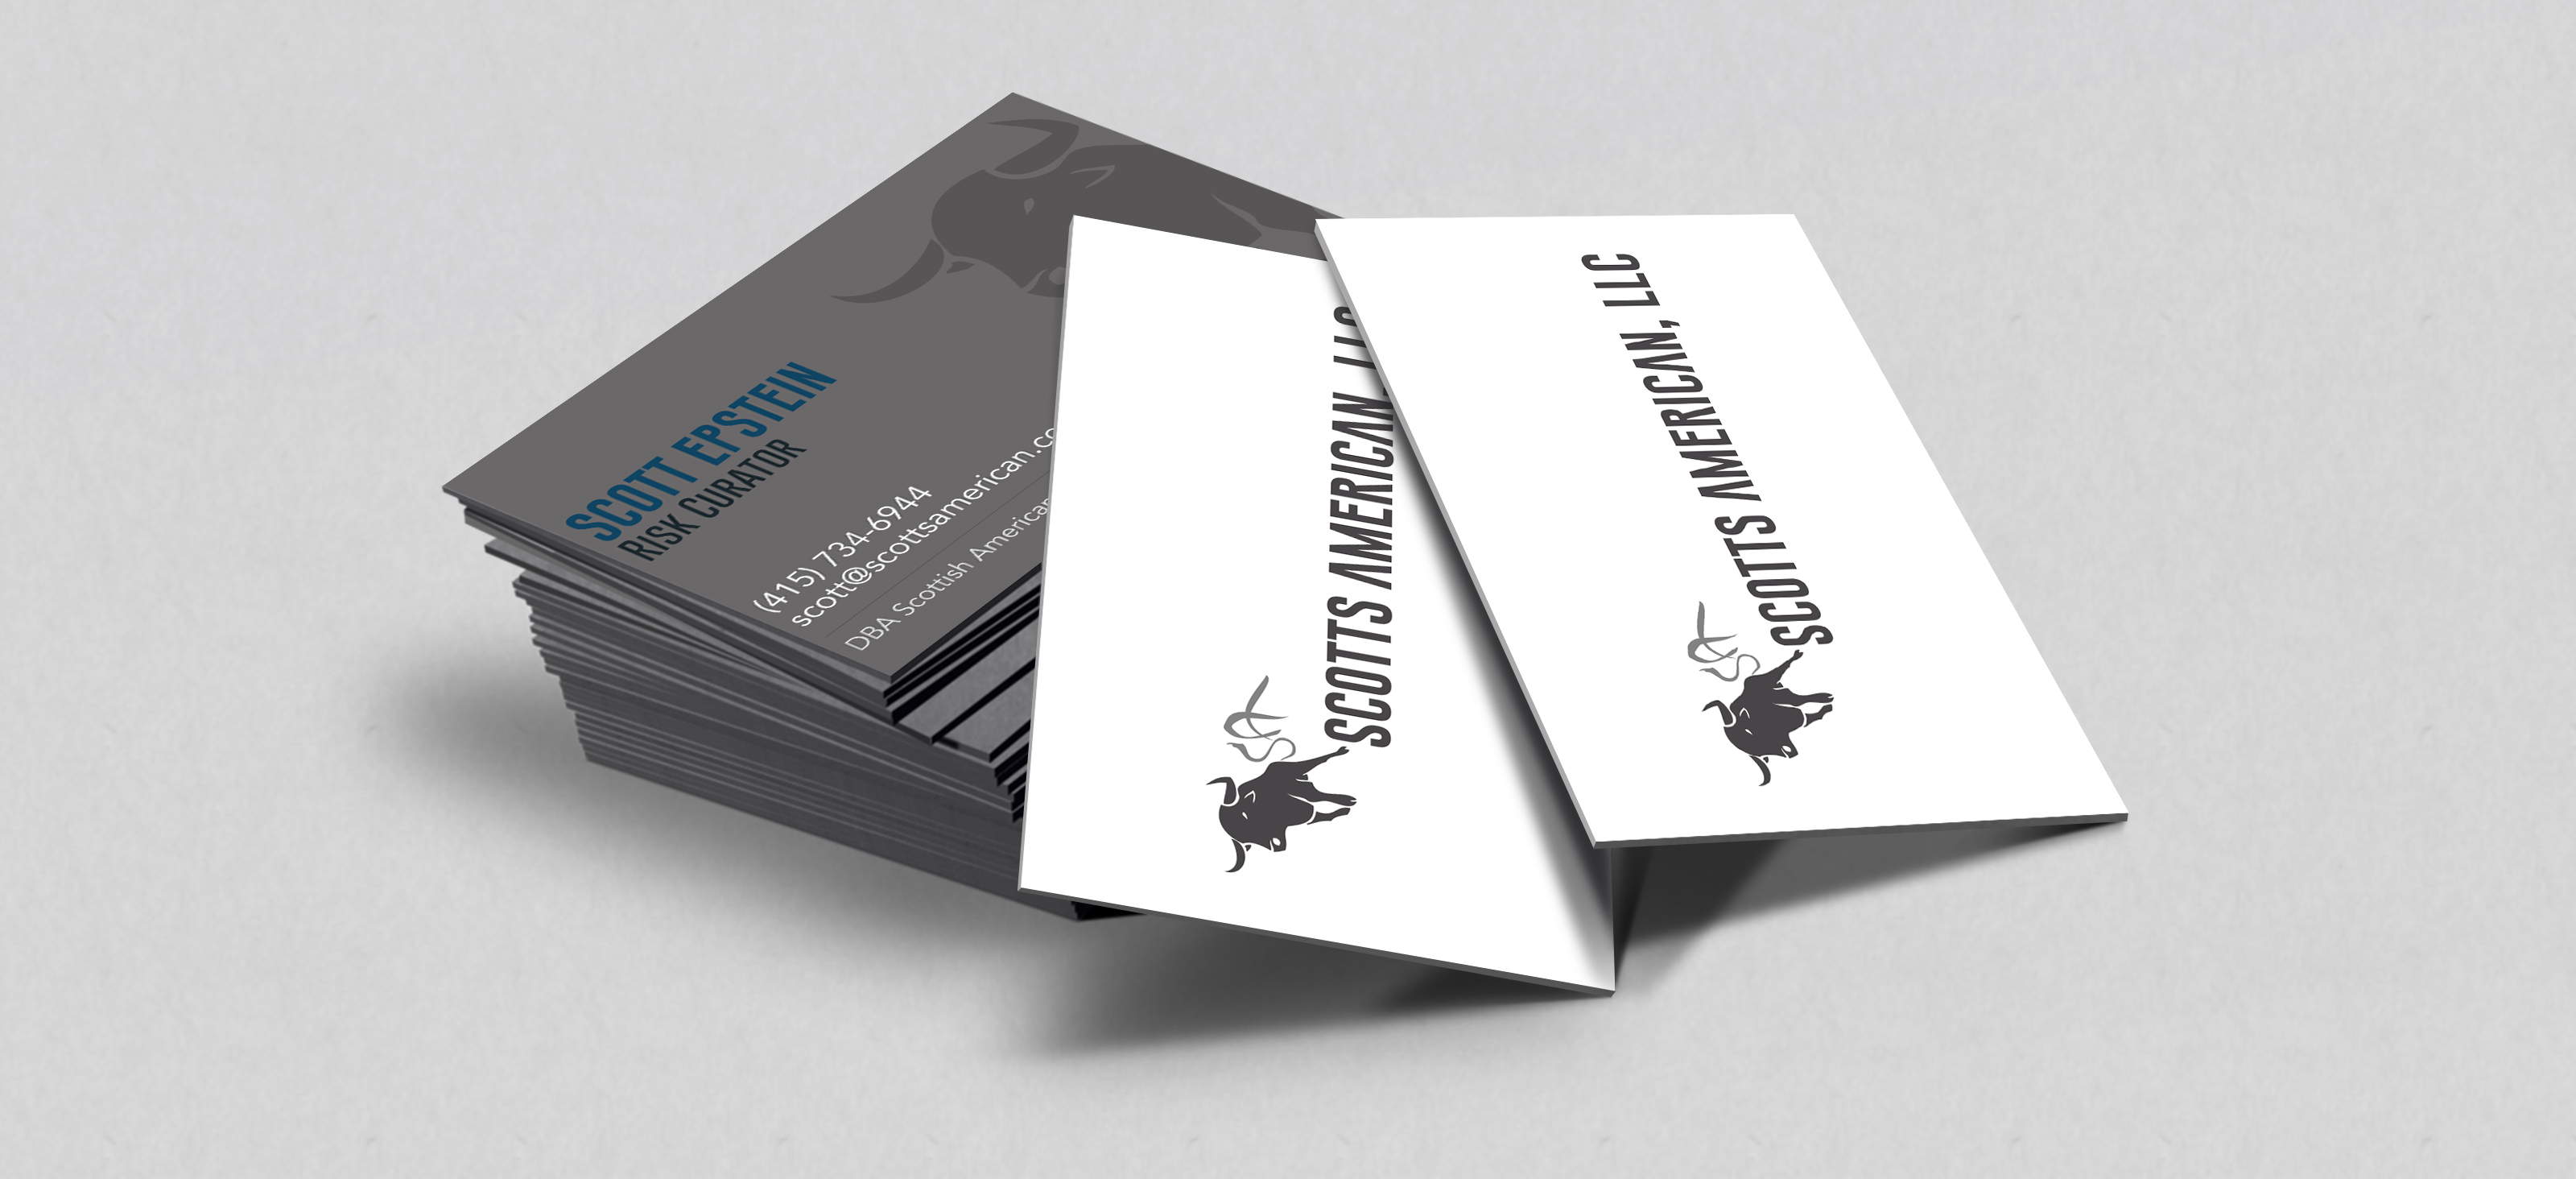 SCOTTS AMERICAN business cards